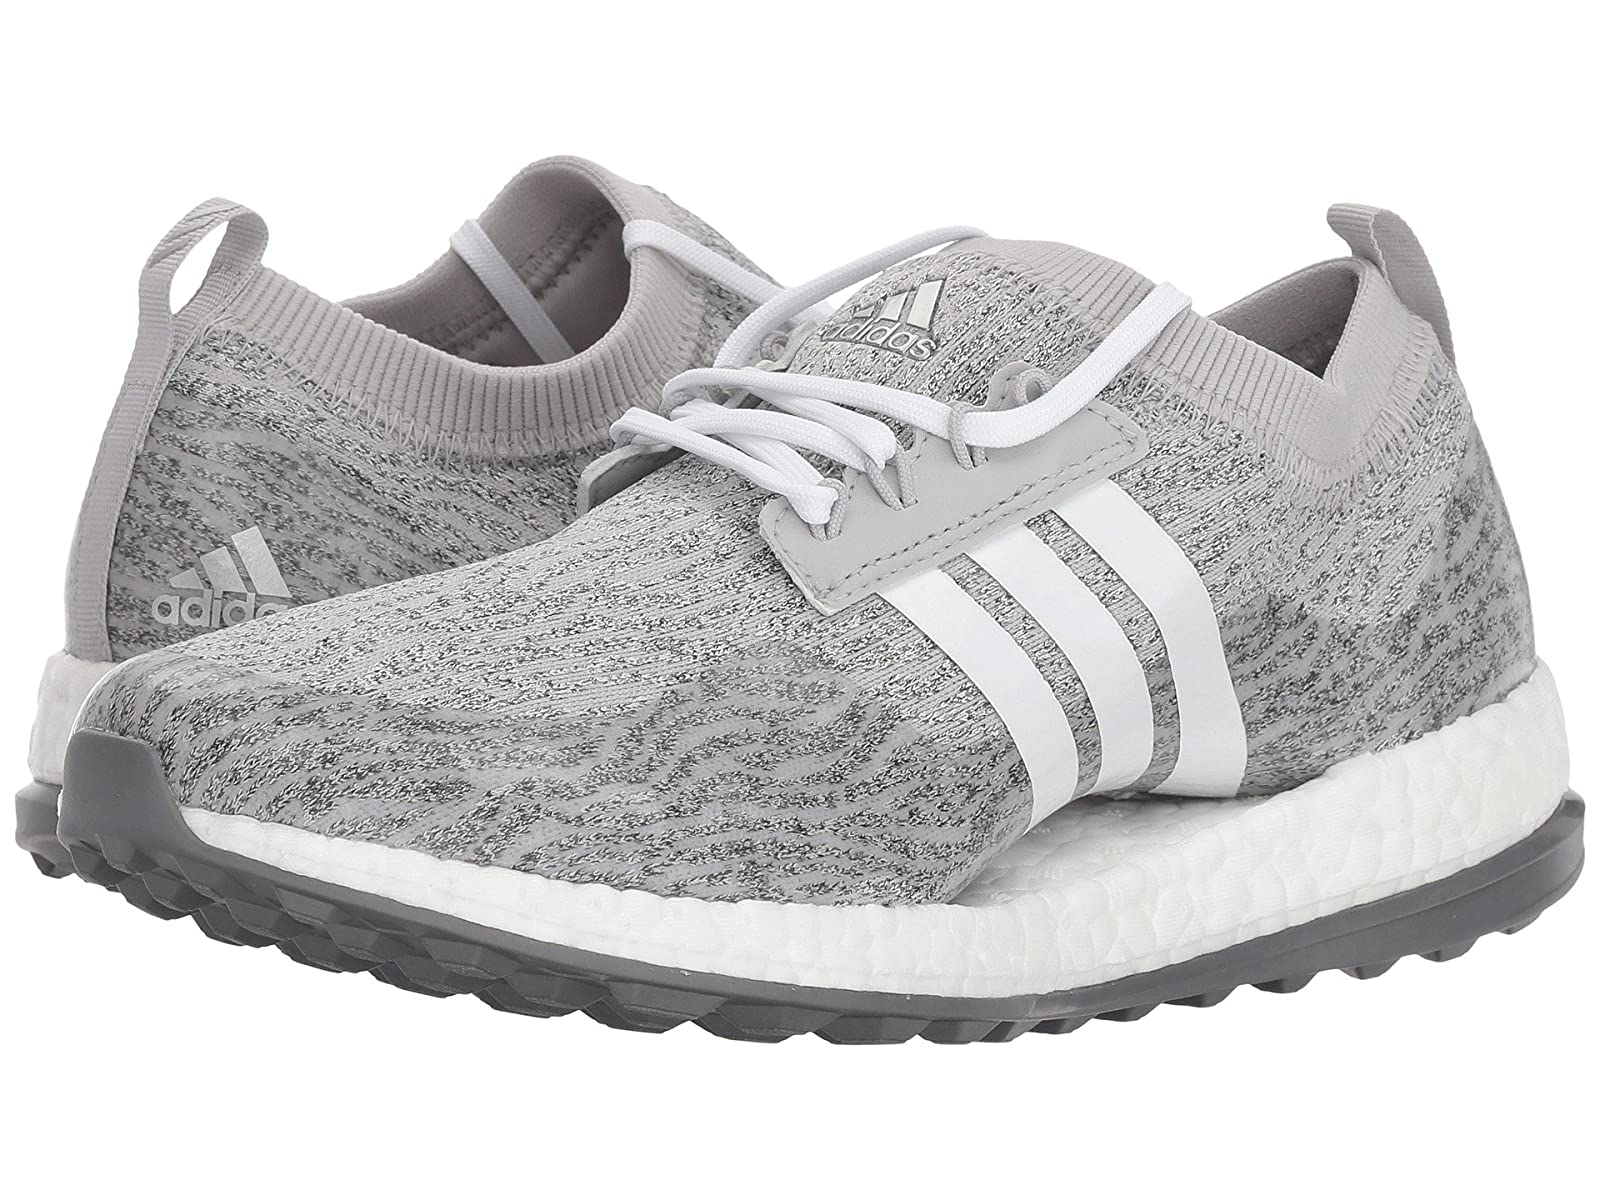 adidas Golf Pure Boost XGAtmospheric grades have affordable shoes